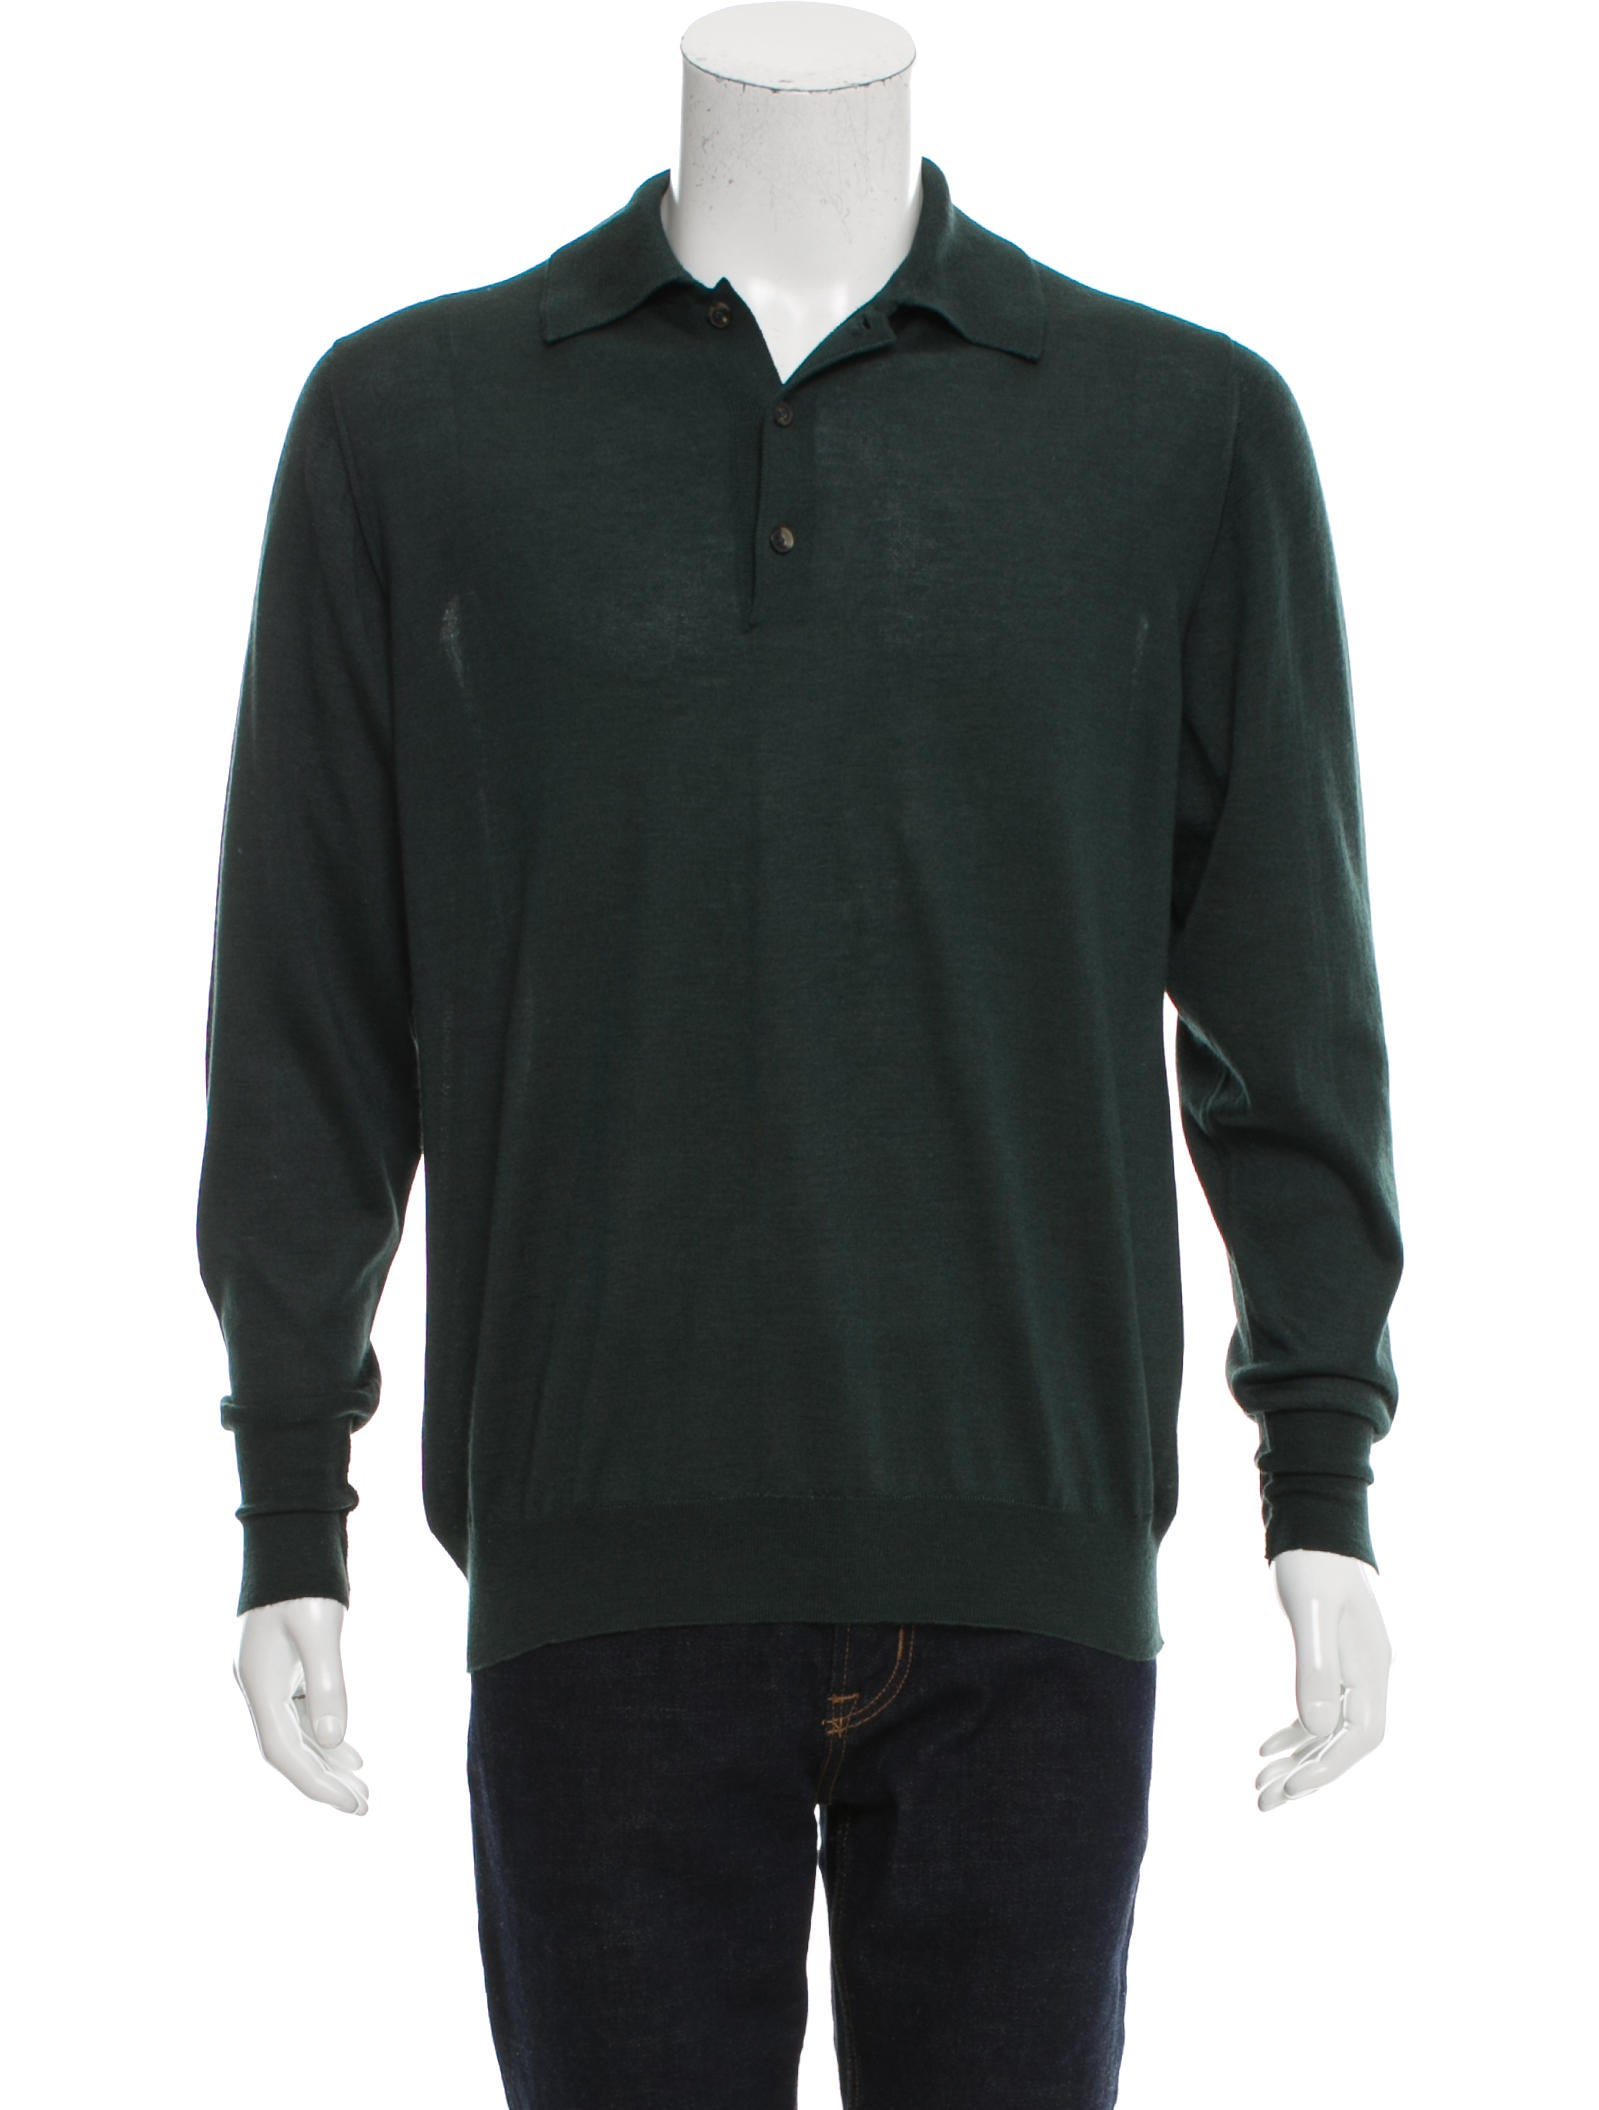 Find great deals on eBay for cashmere polo. Shop with confidence.